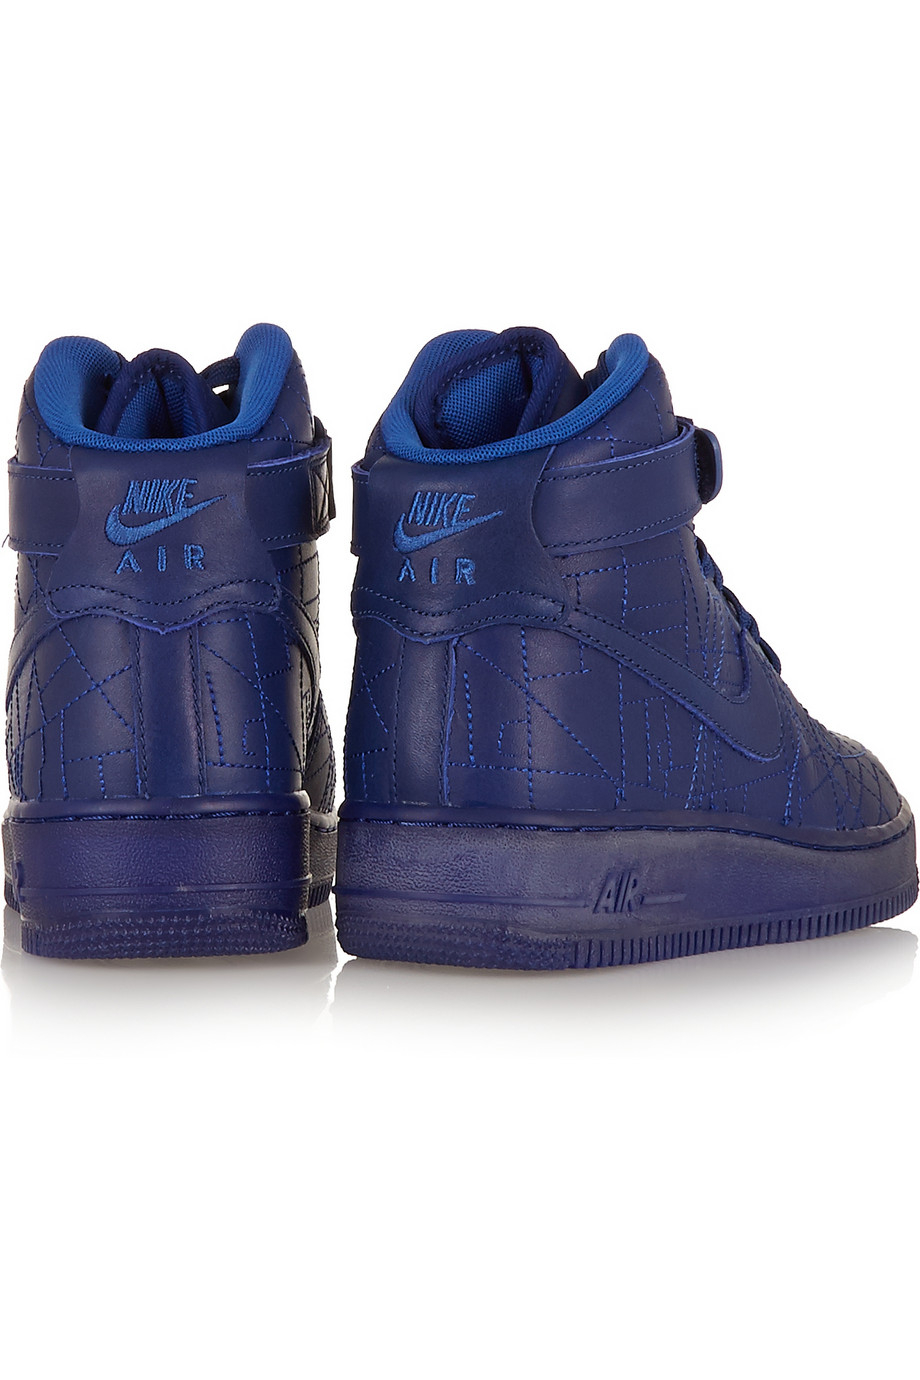 nike air force 1 paris leather high top sneakers in blue. Black Bedroom Furniture Sets. Home Design Ideas